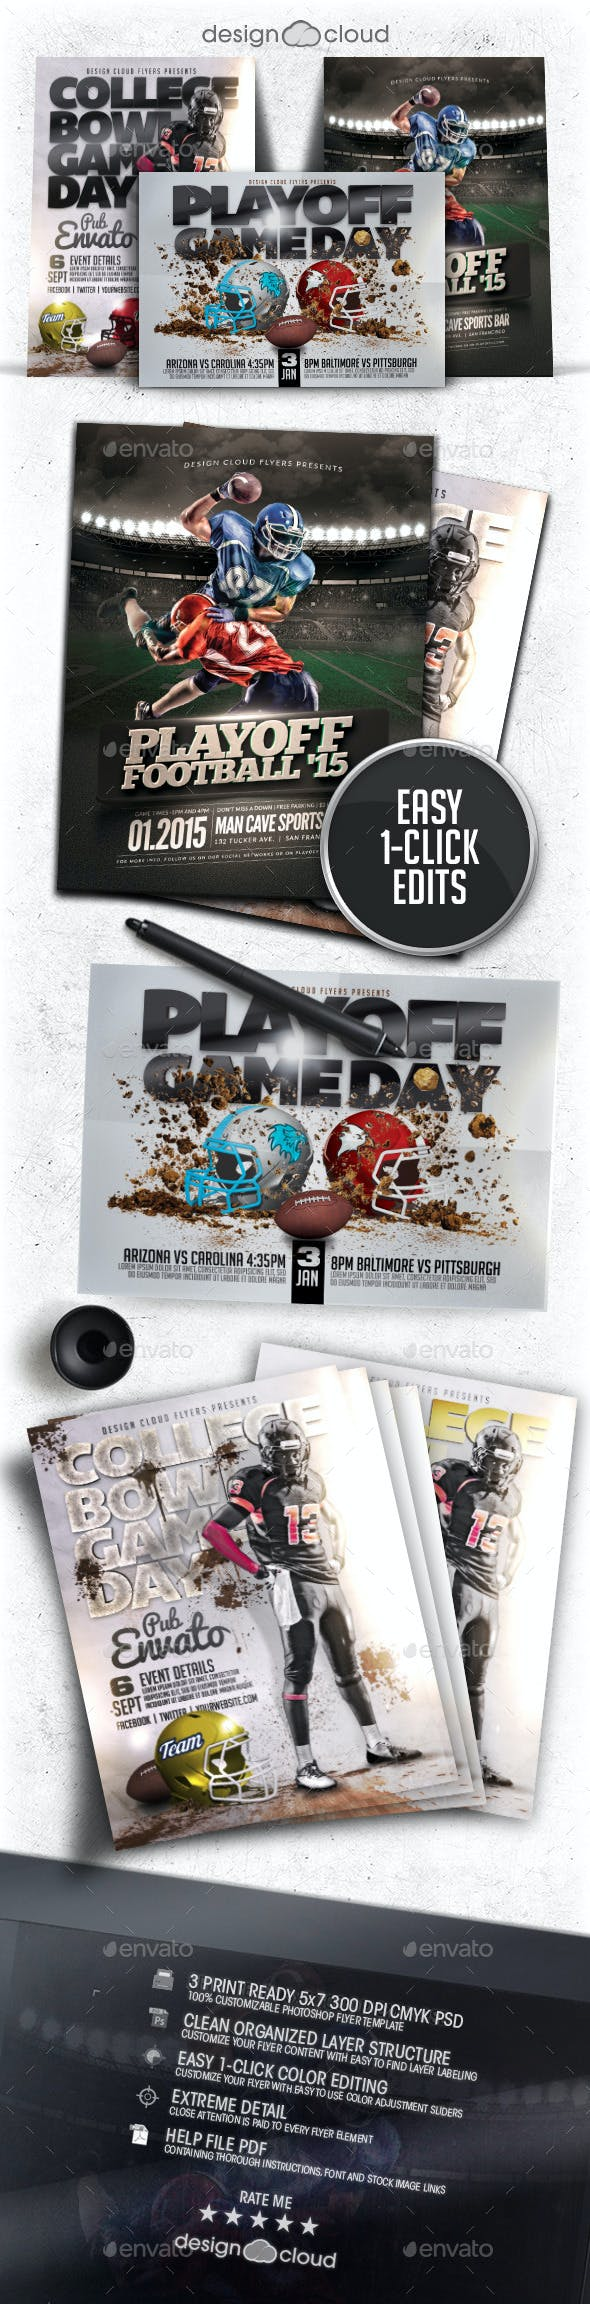 playoff football flyer poster template bundle by design cloud